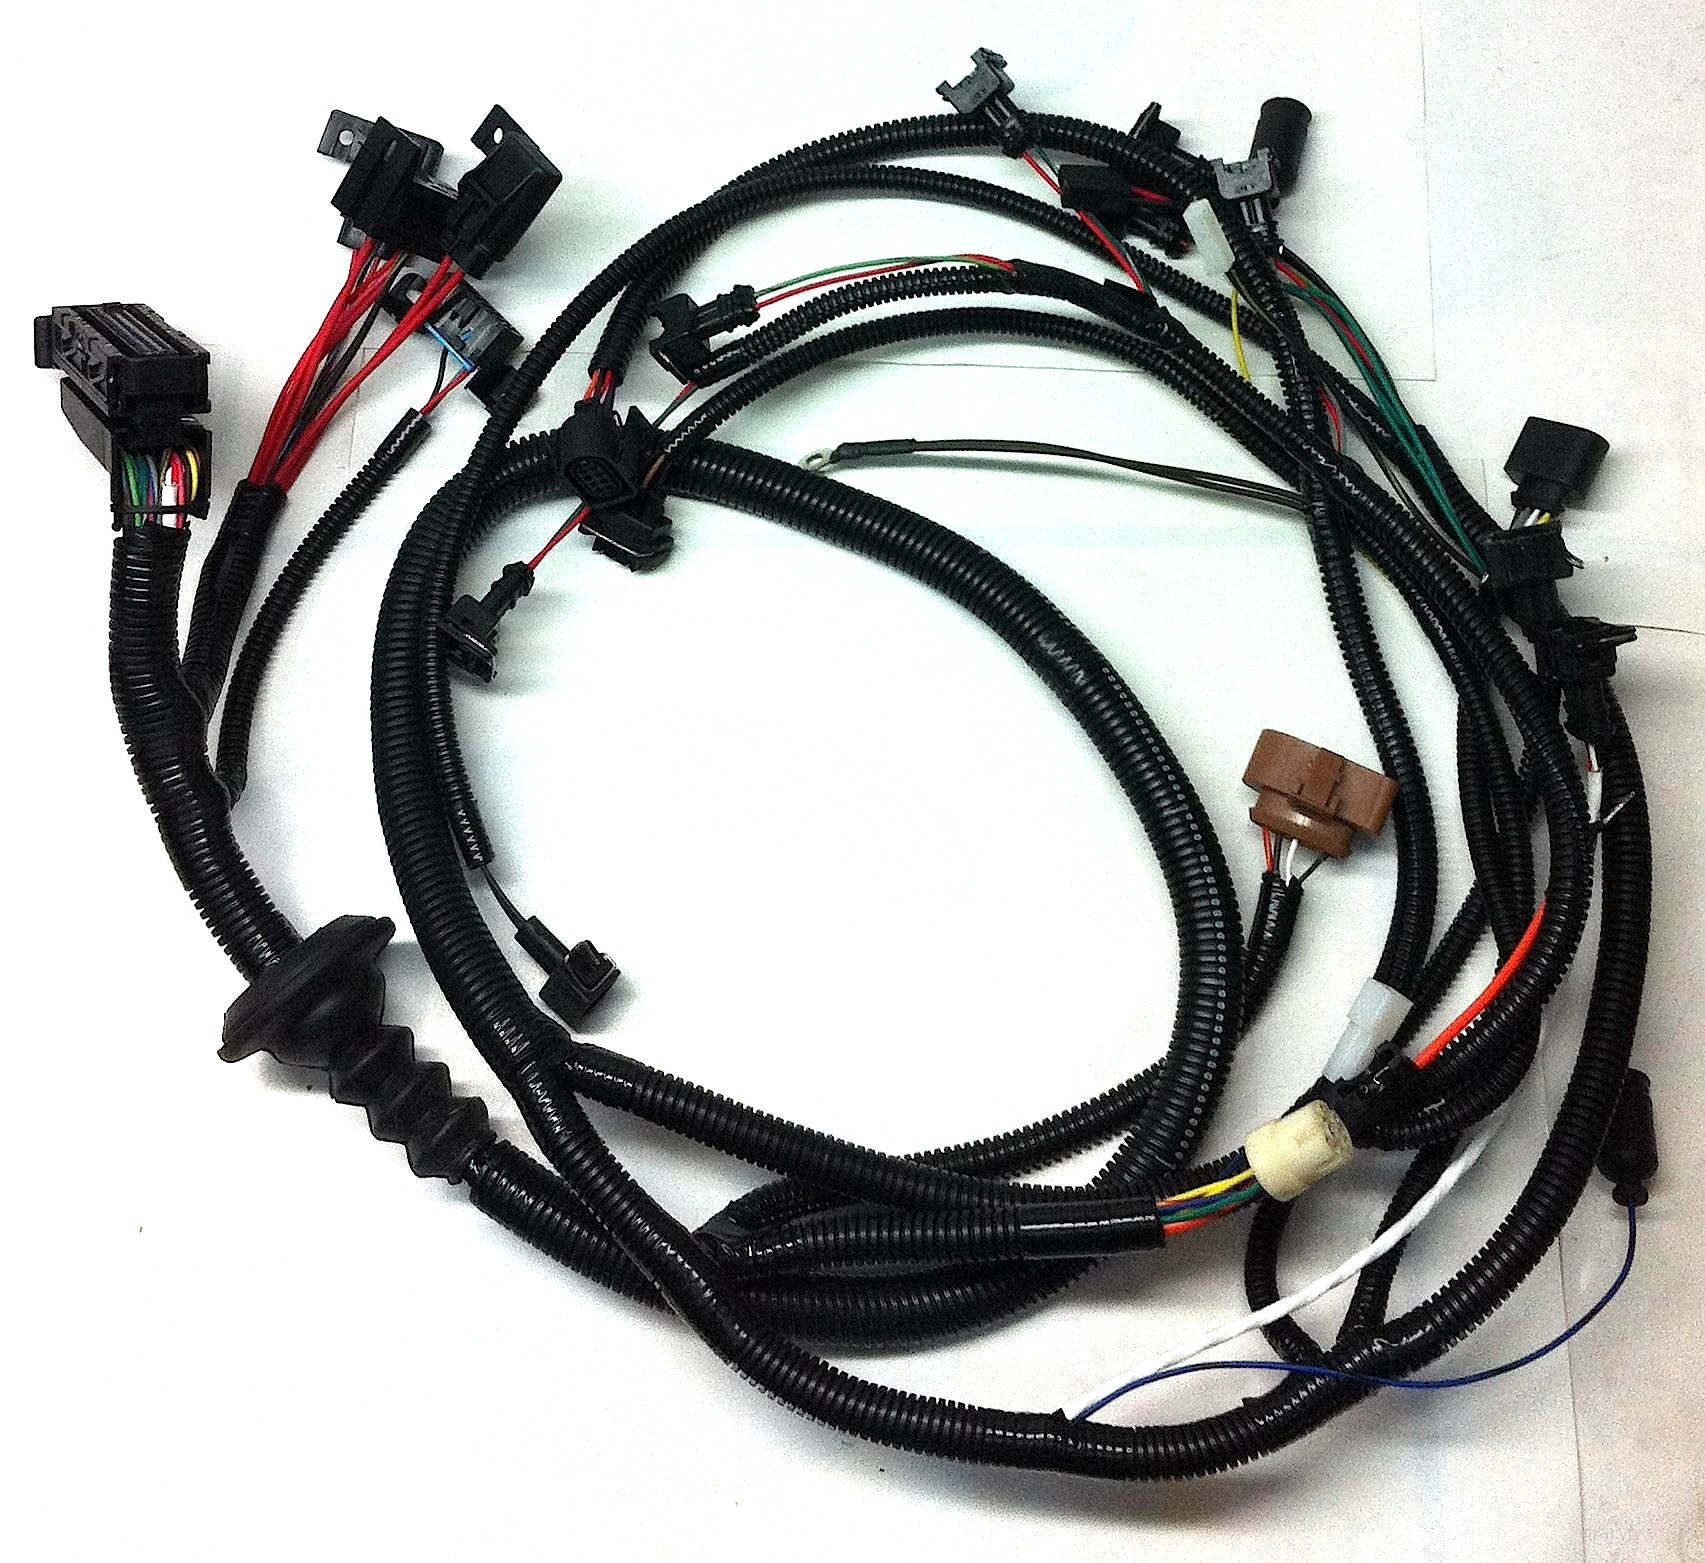 Wiring_Harness_2LR 2lr tiico conversion wiring harness foreign auto & supply, inc engine wiring harness at mifinder.co